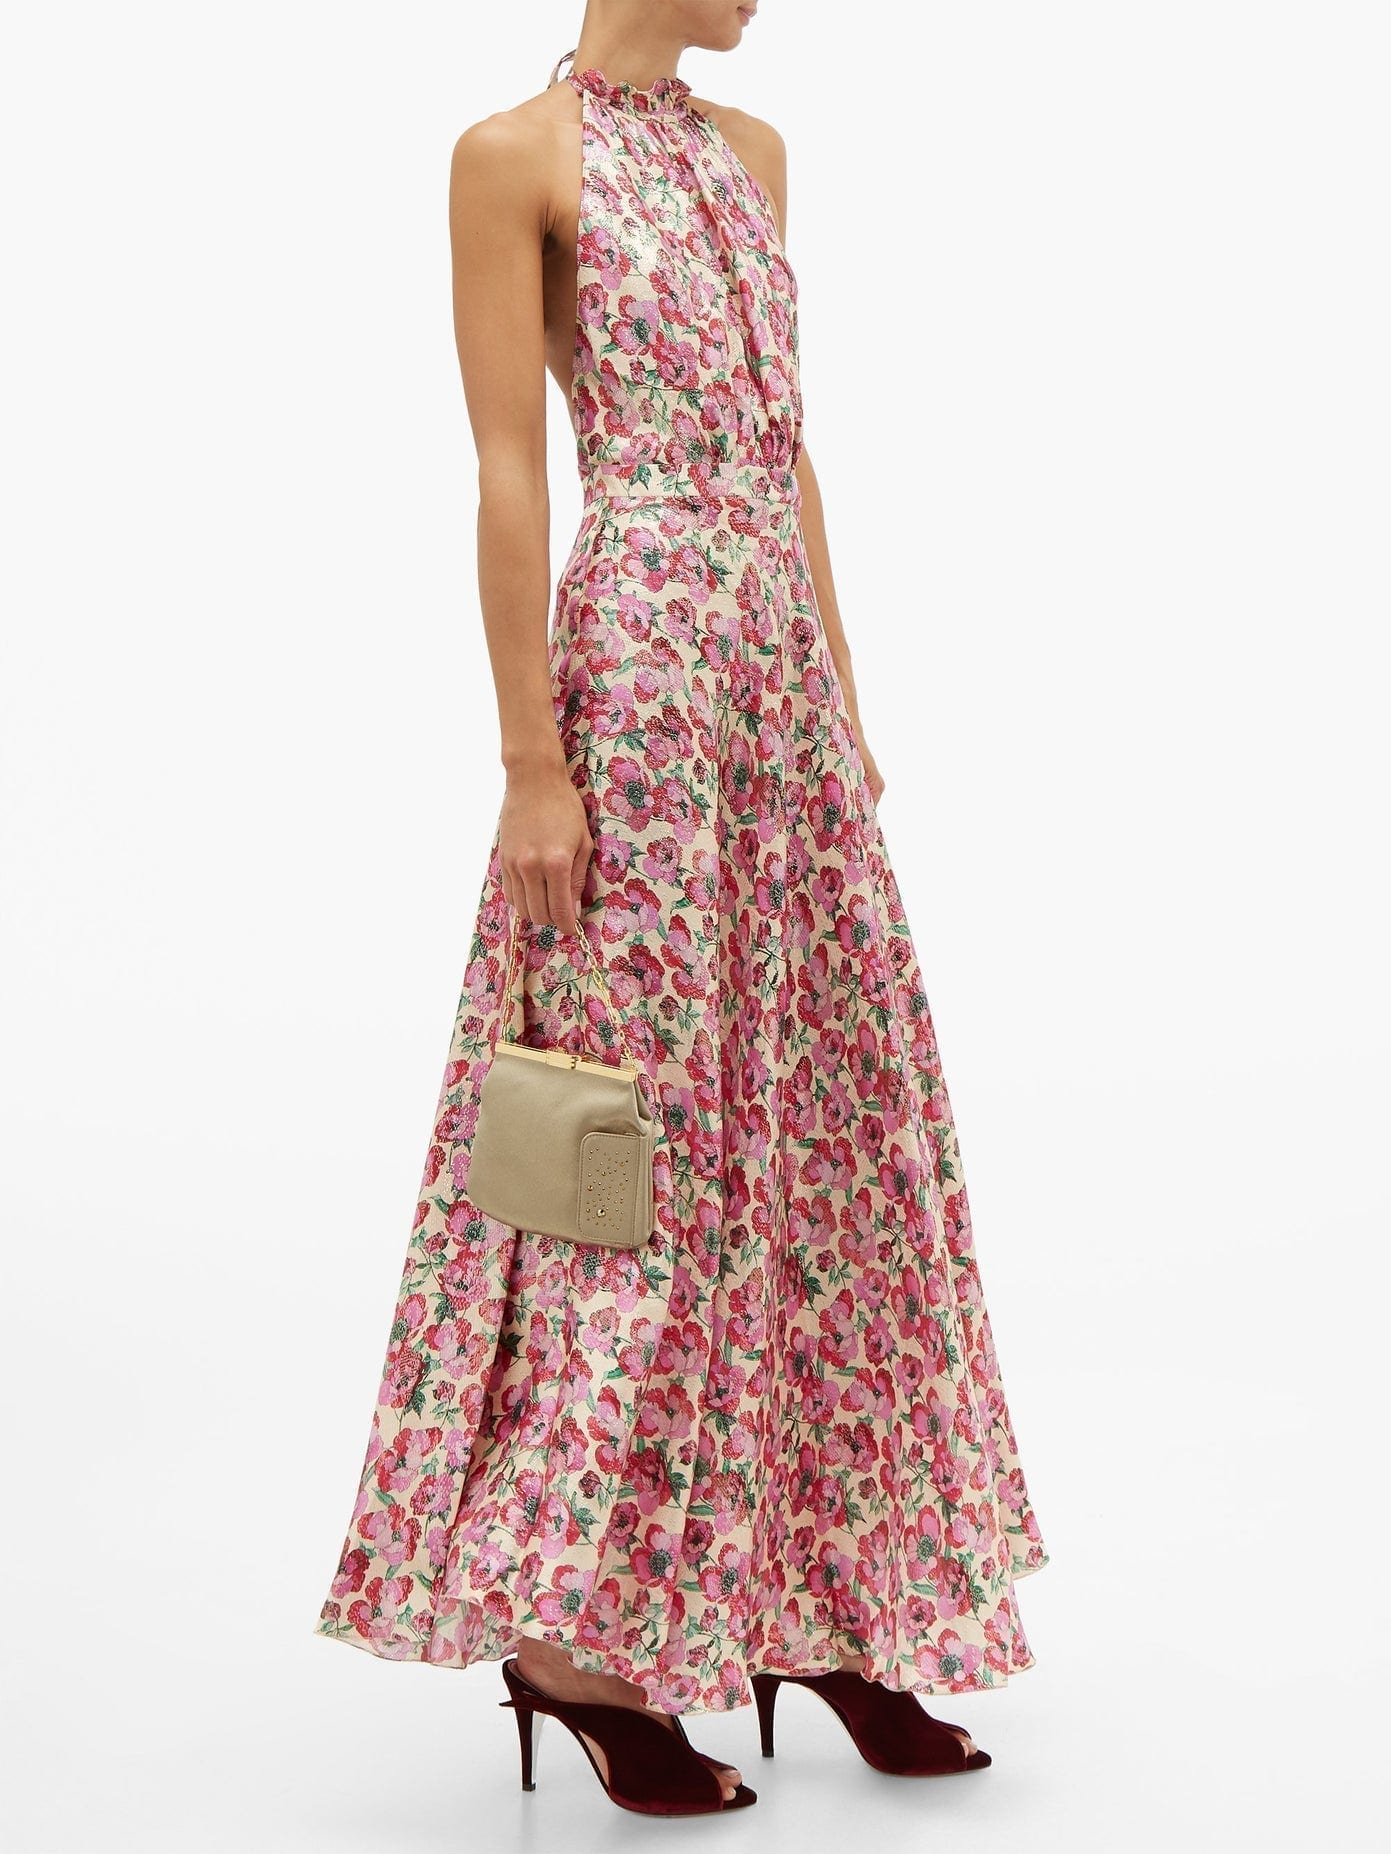 RAQUEL DINIZ Giovanna Floral-print Silk Lamé Dress